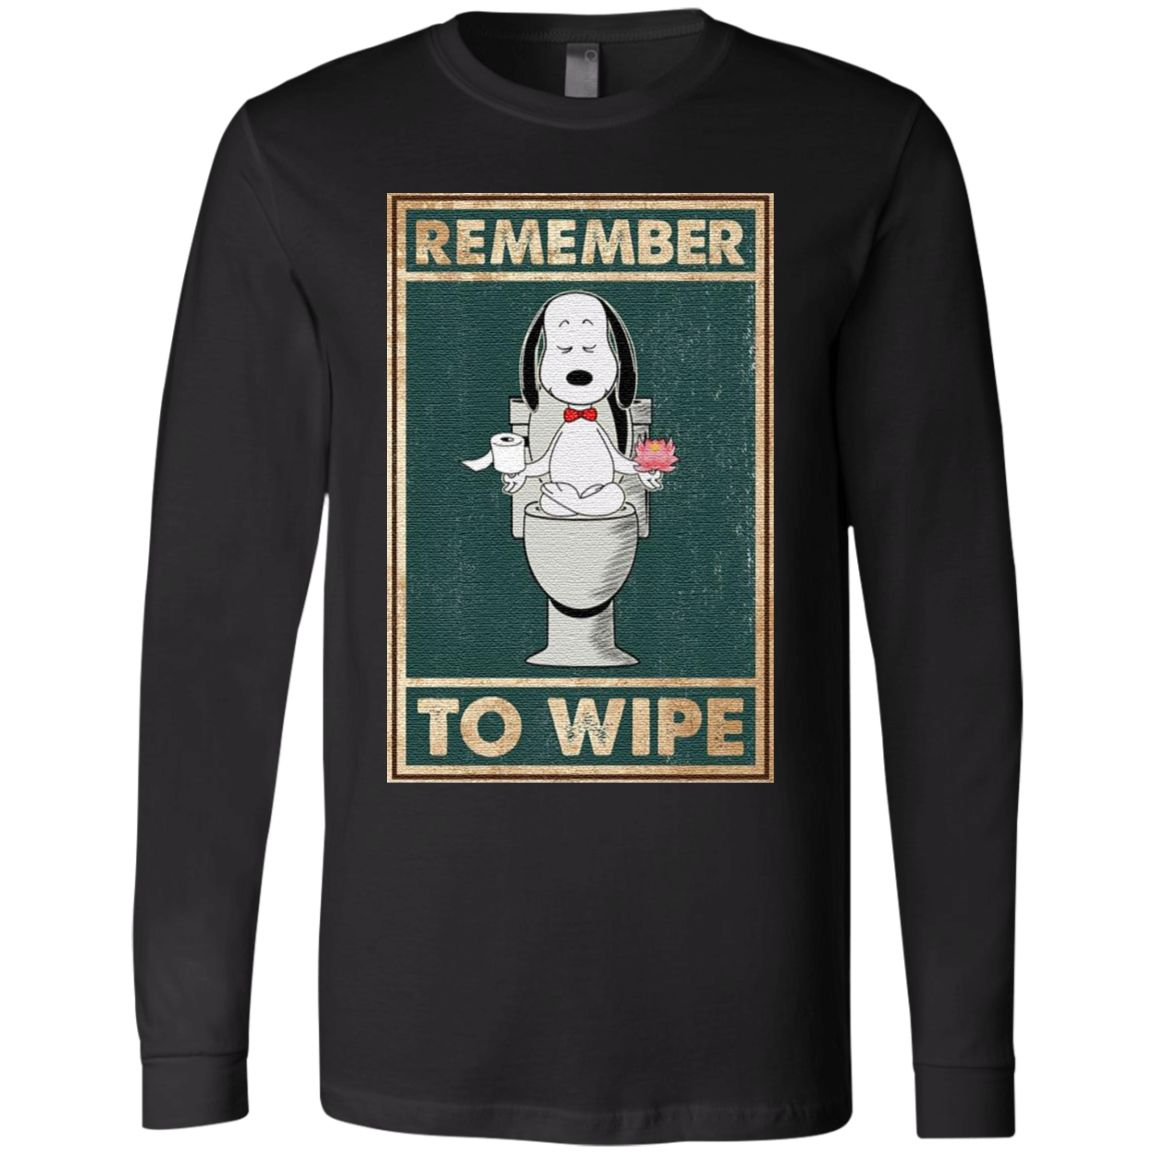 Snoopy Remember to Wipe tshirt